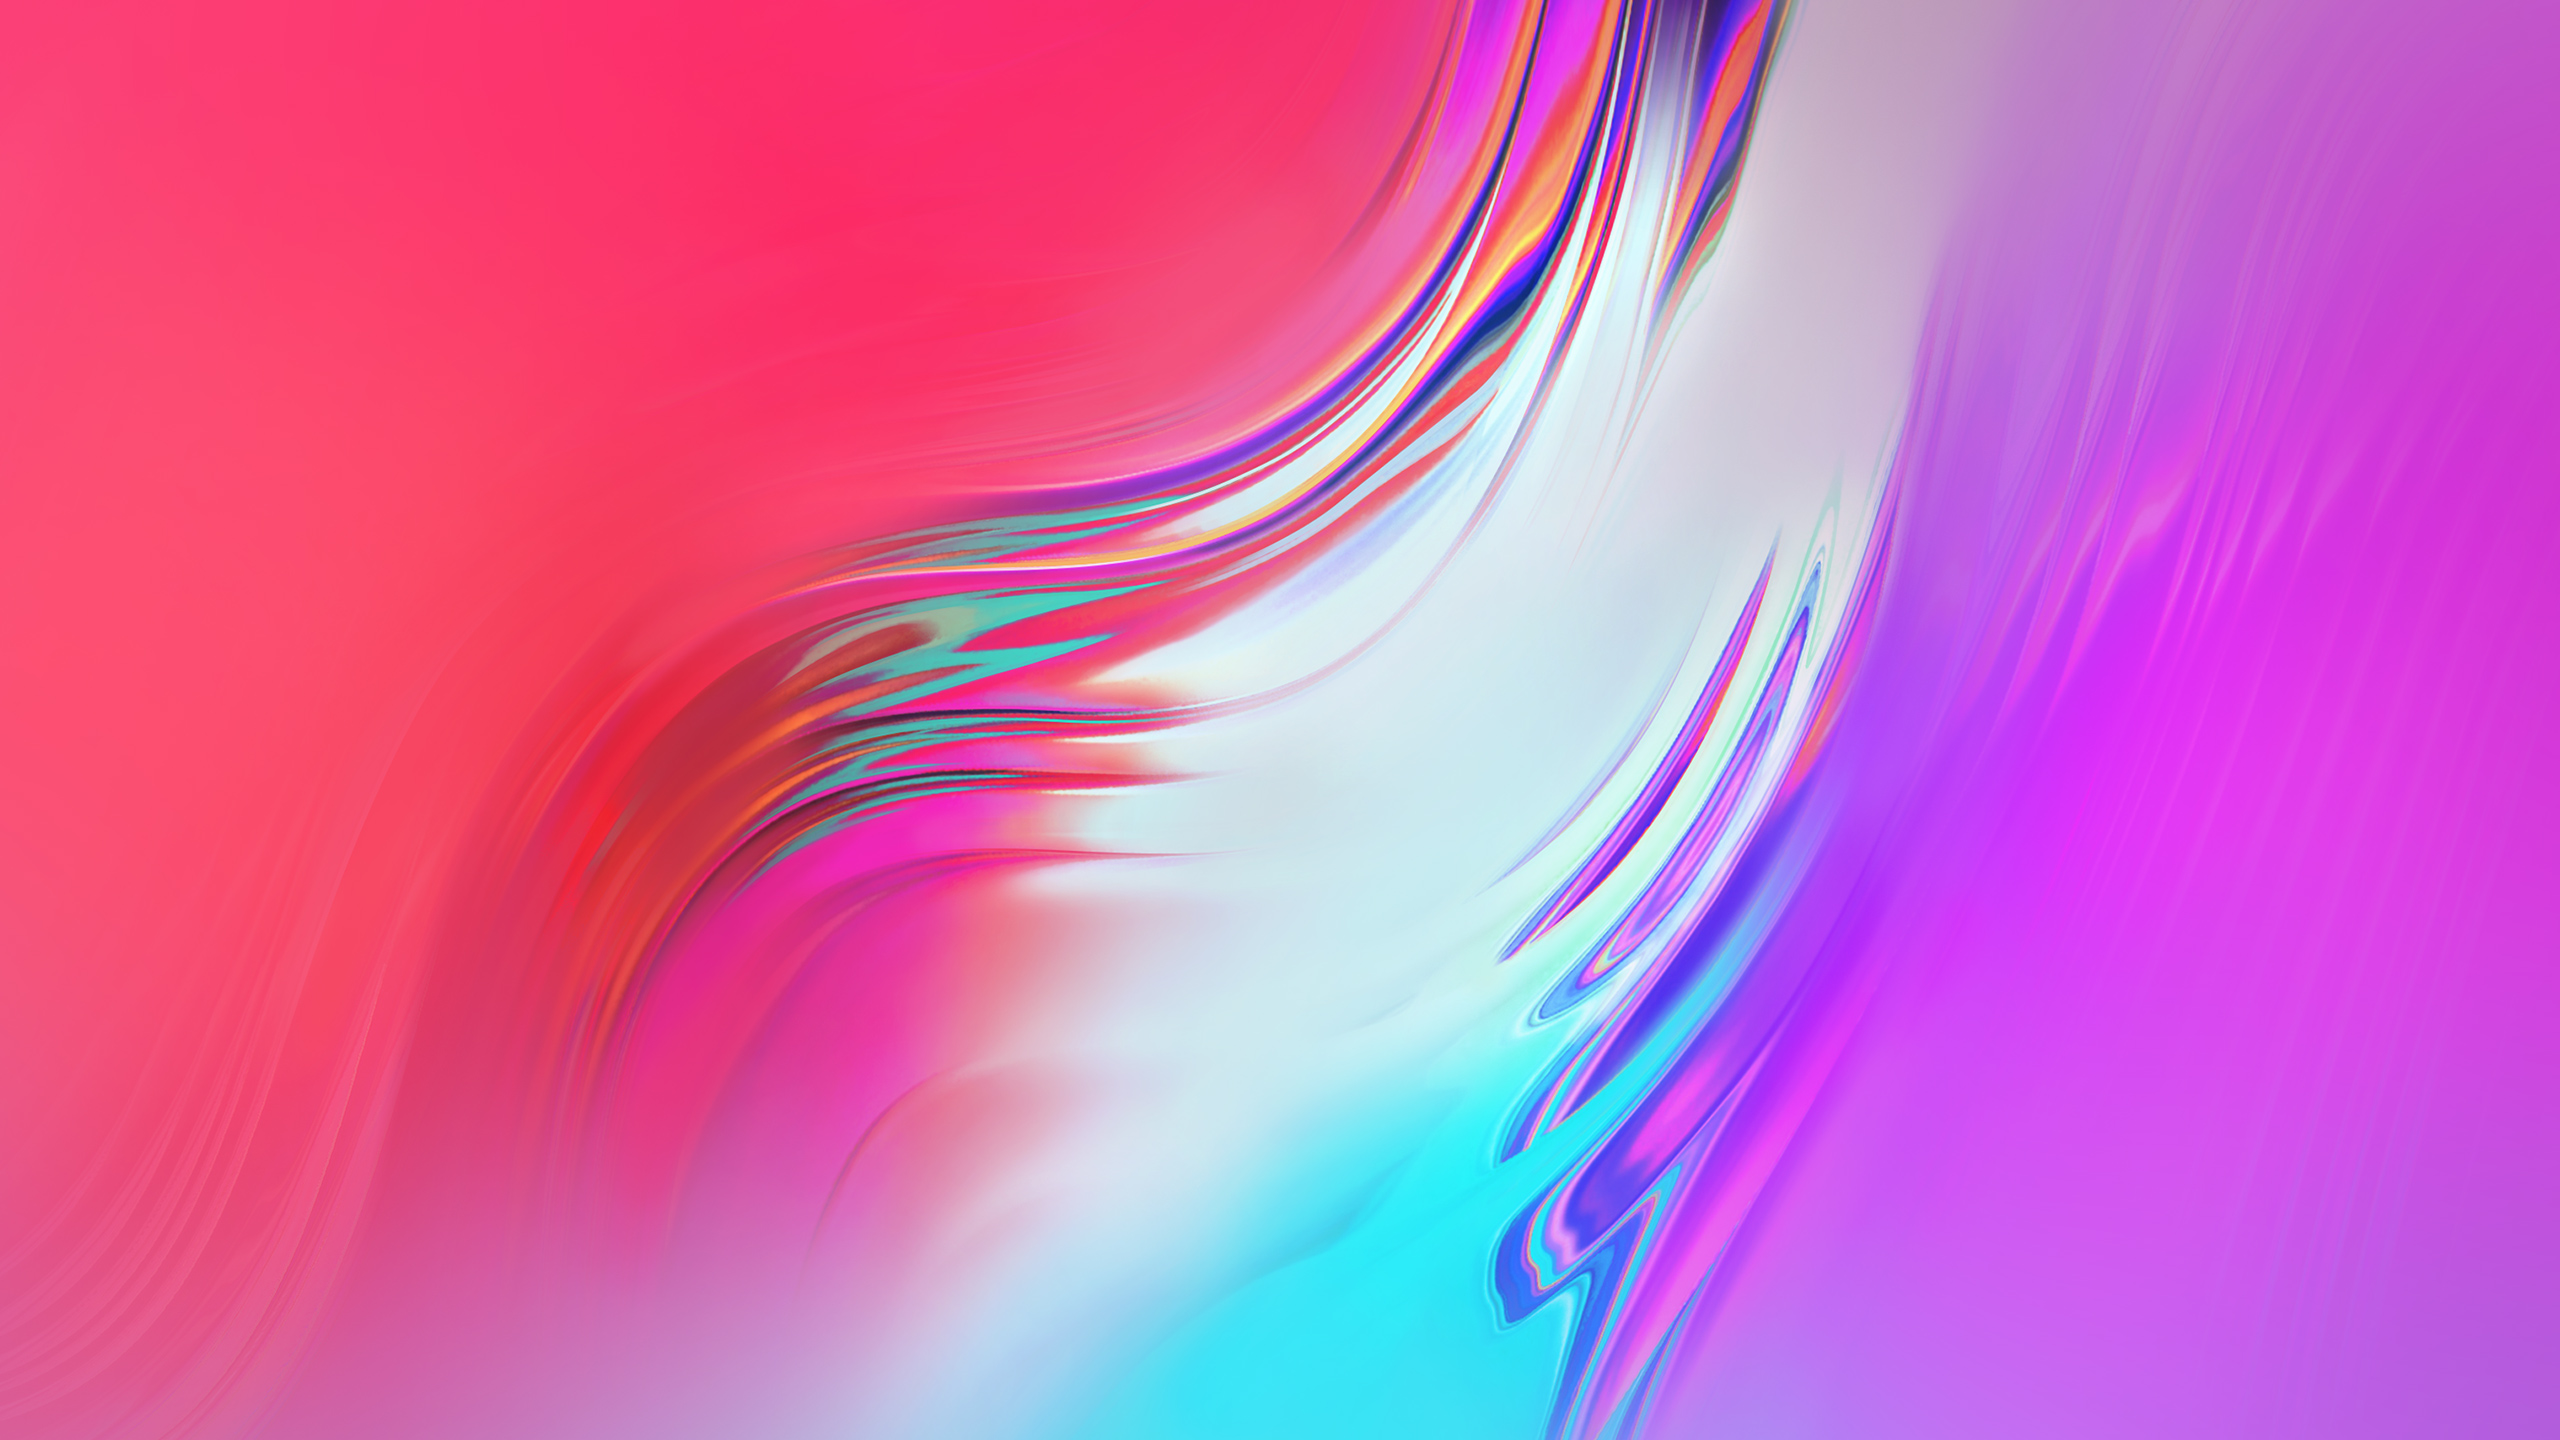 1920x1080 Samsung Galaxy S10 Abstract Laptop Full Hd 1080p Hd 4k Wallpapers Images Backgrounds Photos And Pictures